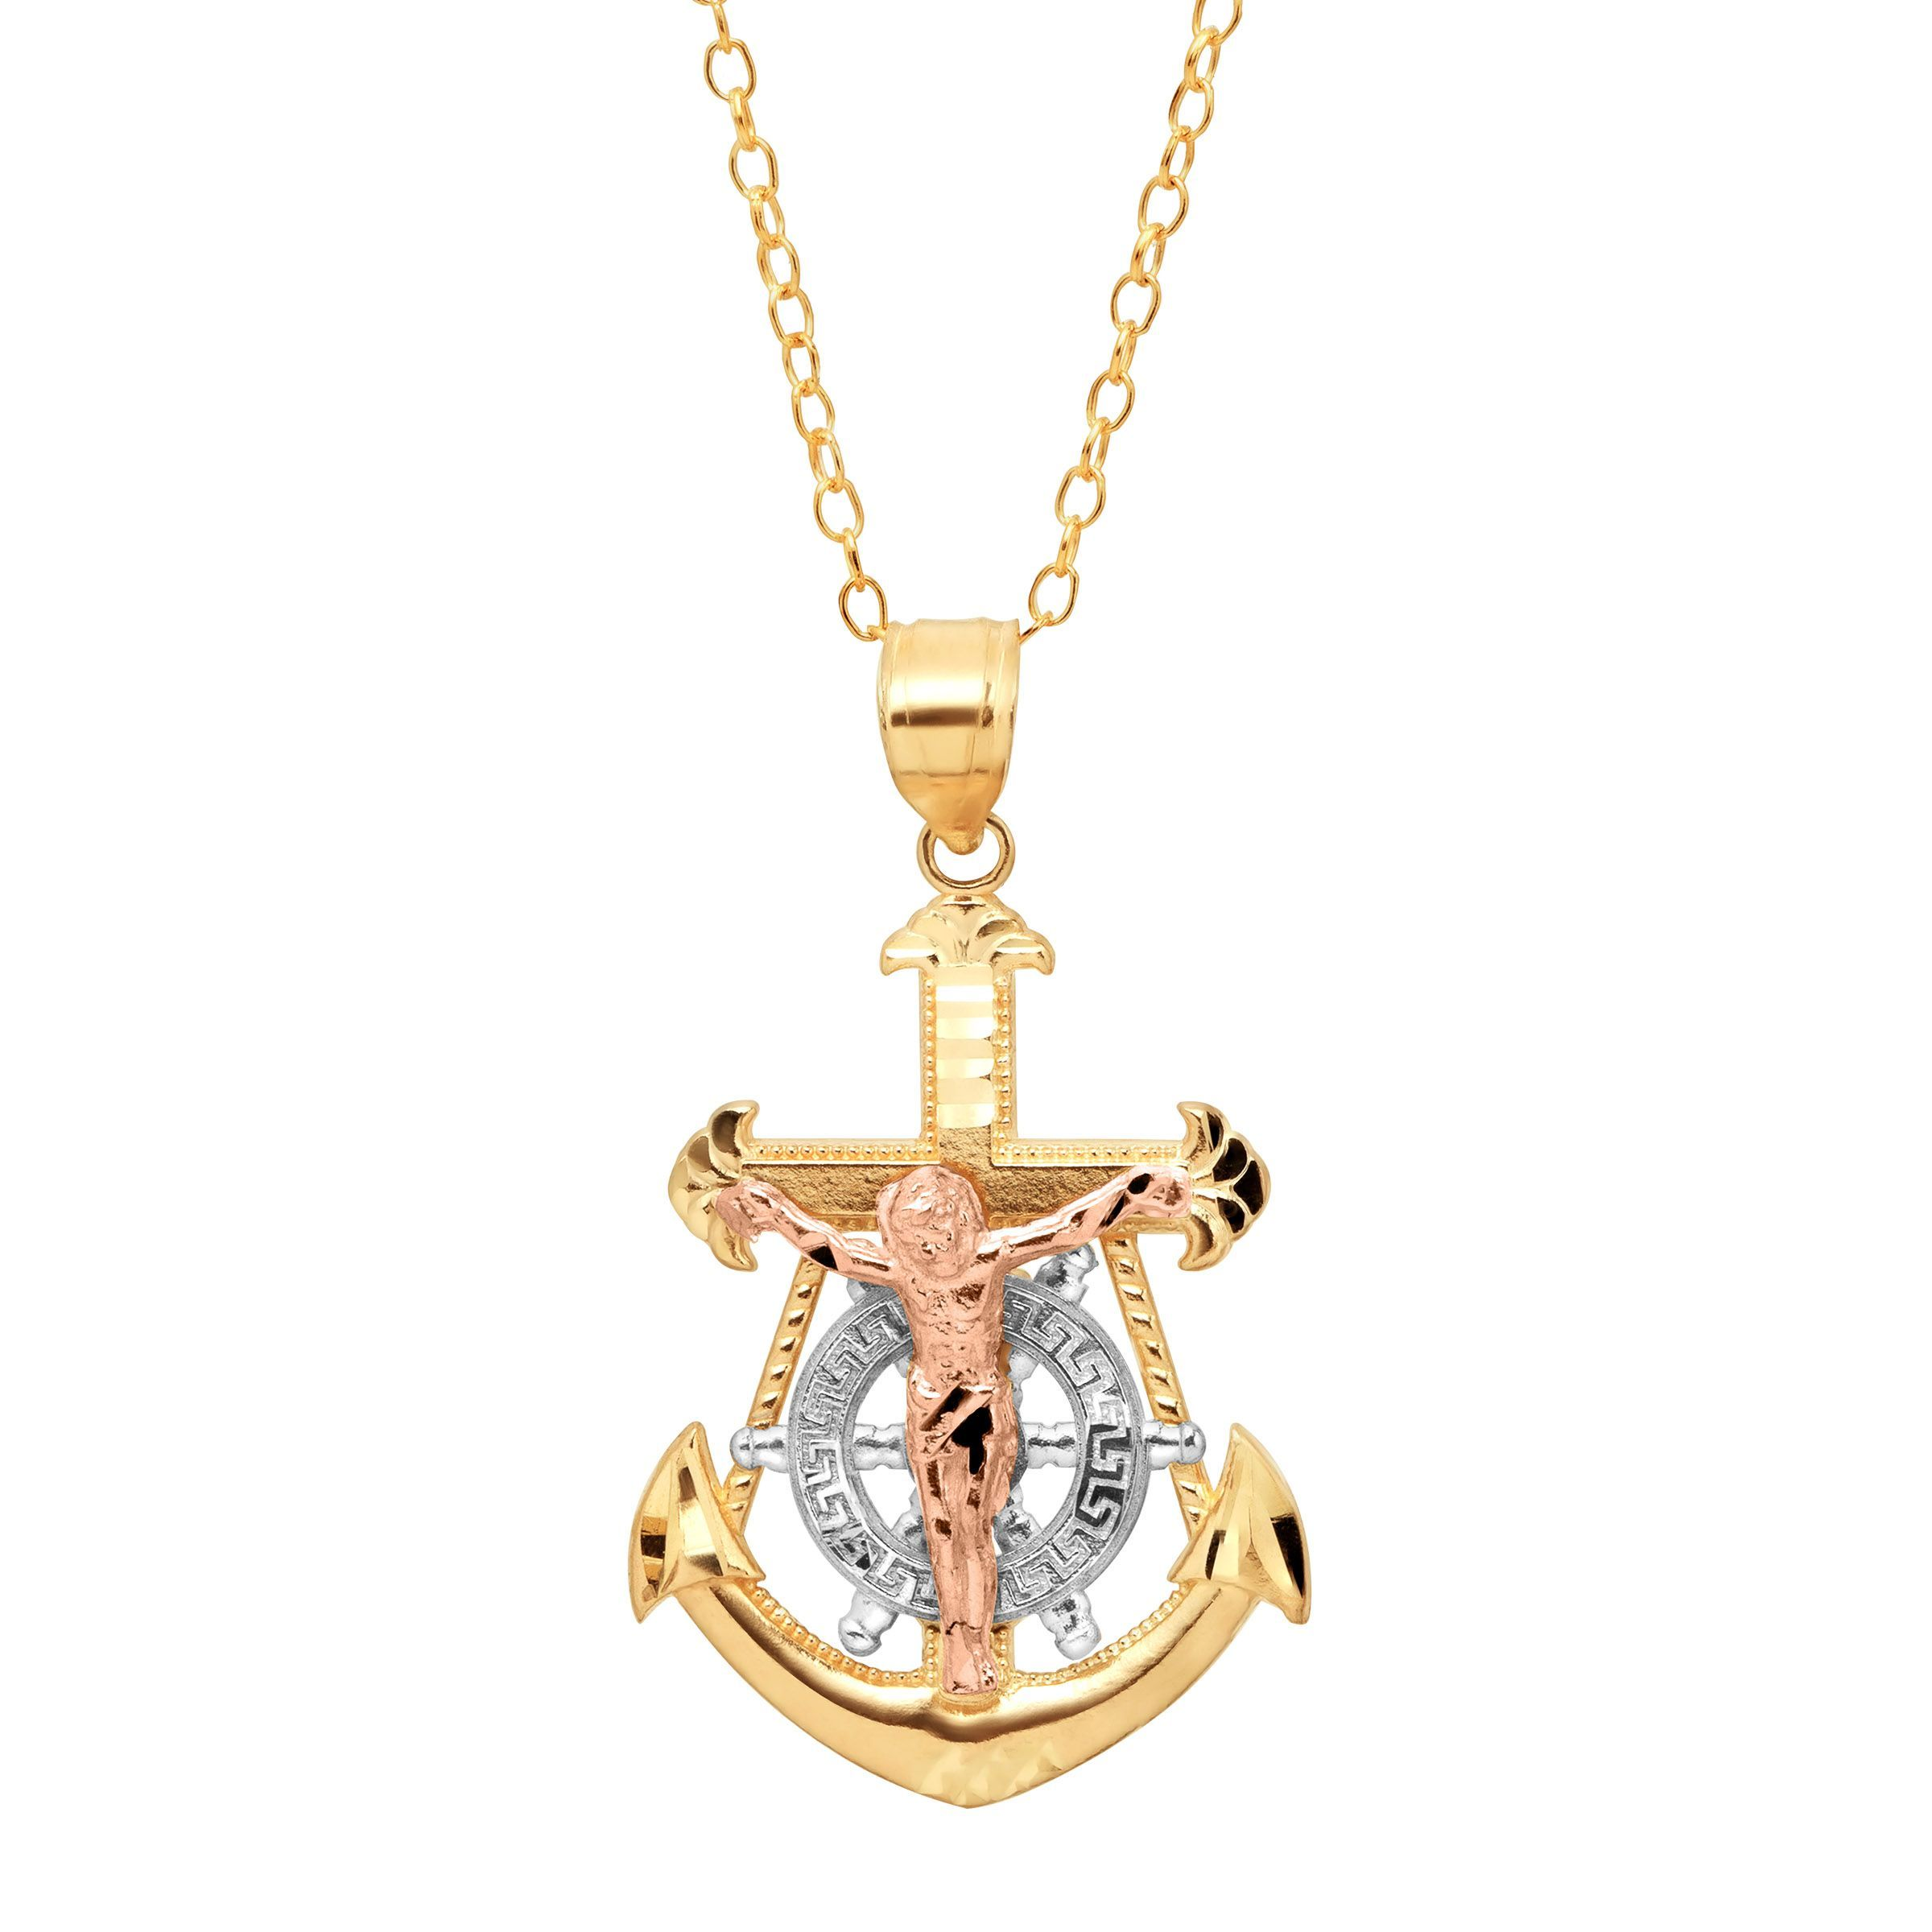 s palmbeach shipping overstock necklace pendant mens men on overlay gold over watches plated army orders free jewelry product